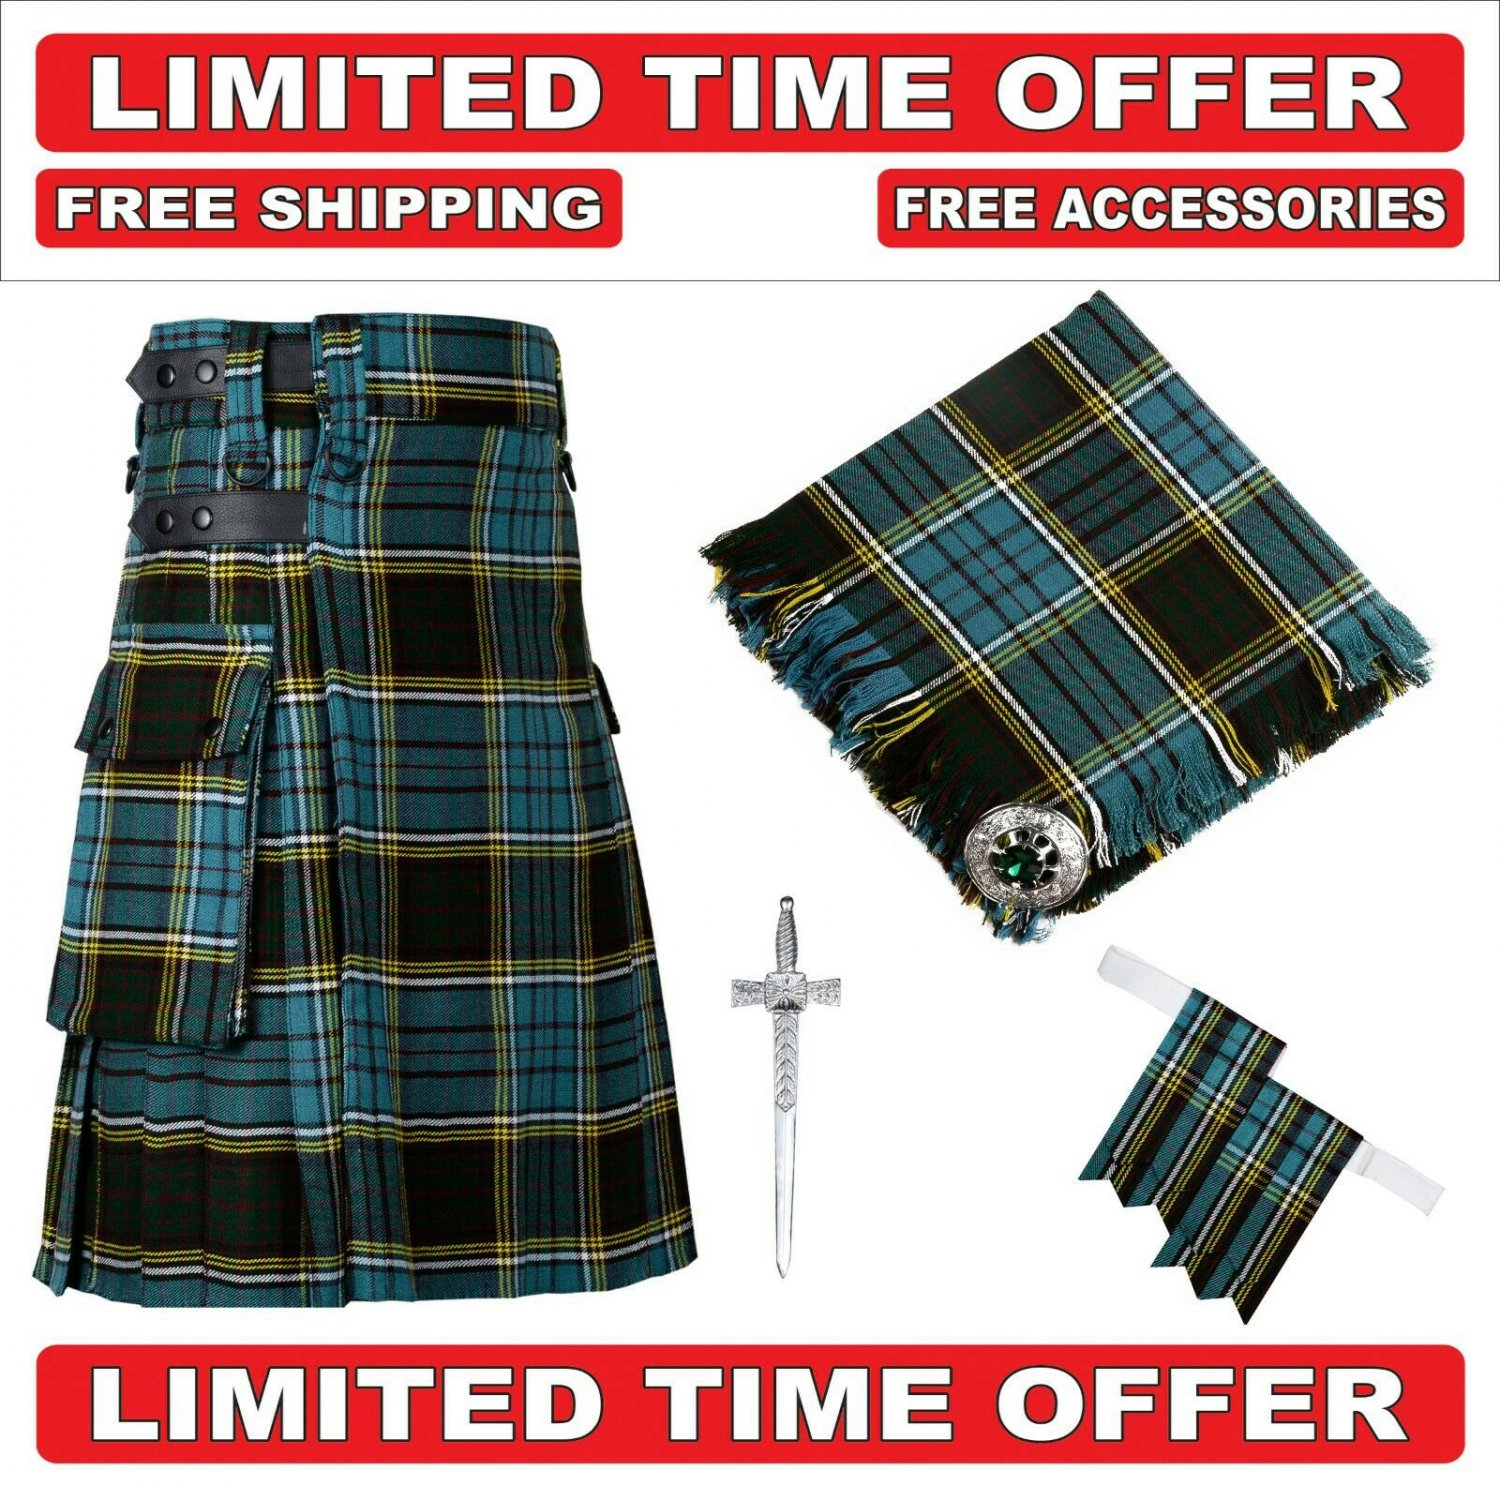 36 size Anderson Scottish Utility Tartan Kilt Package Kilt-Flyplaid-Flashes-Kilt Pin-Brooch